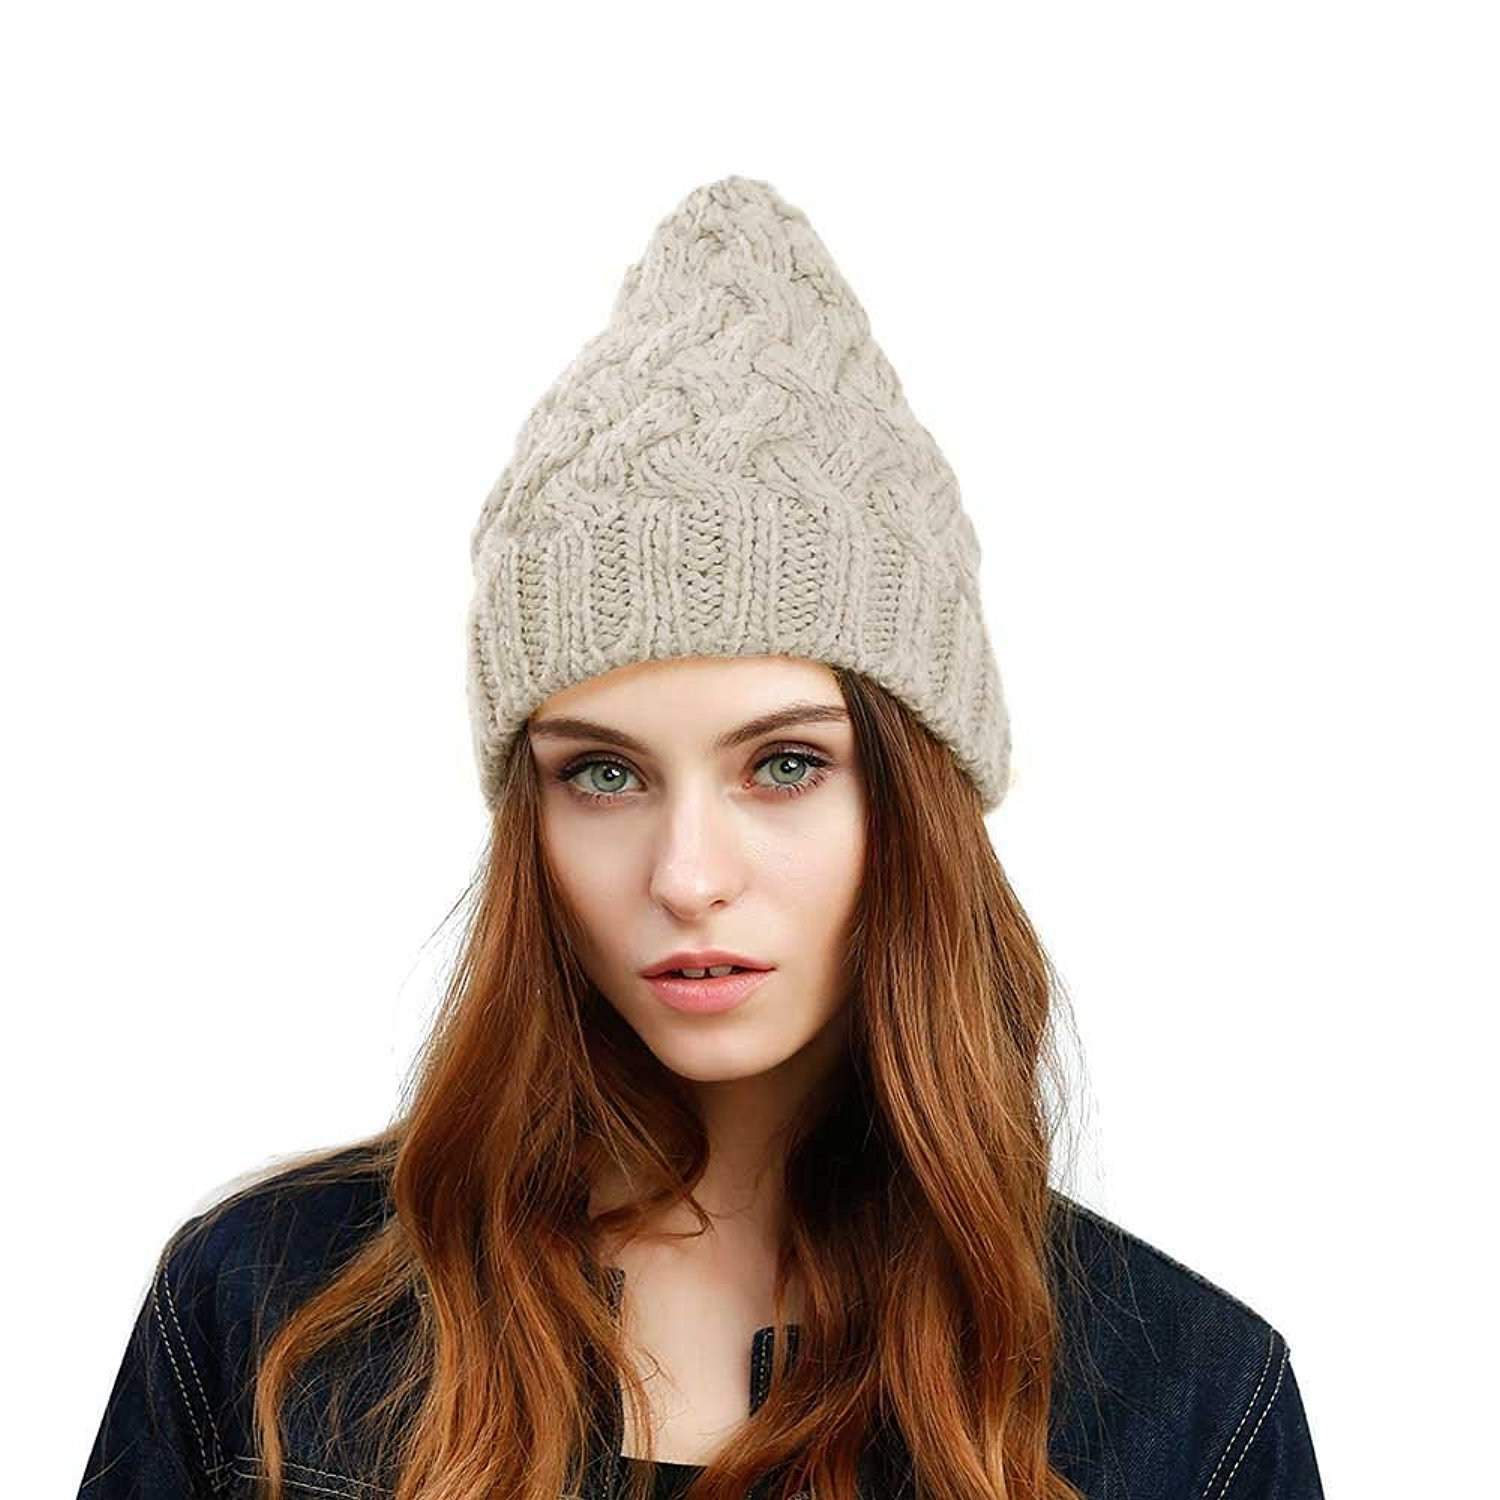 cb0a53af883 Get Quotations · JULY SHEEP Womens Girls Winter Knitted hat Wool Braided  twist hat Pointed wool hat Ski Cap